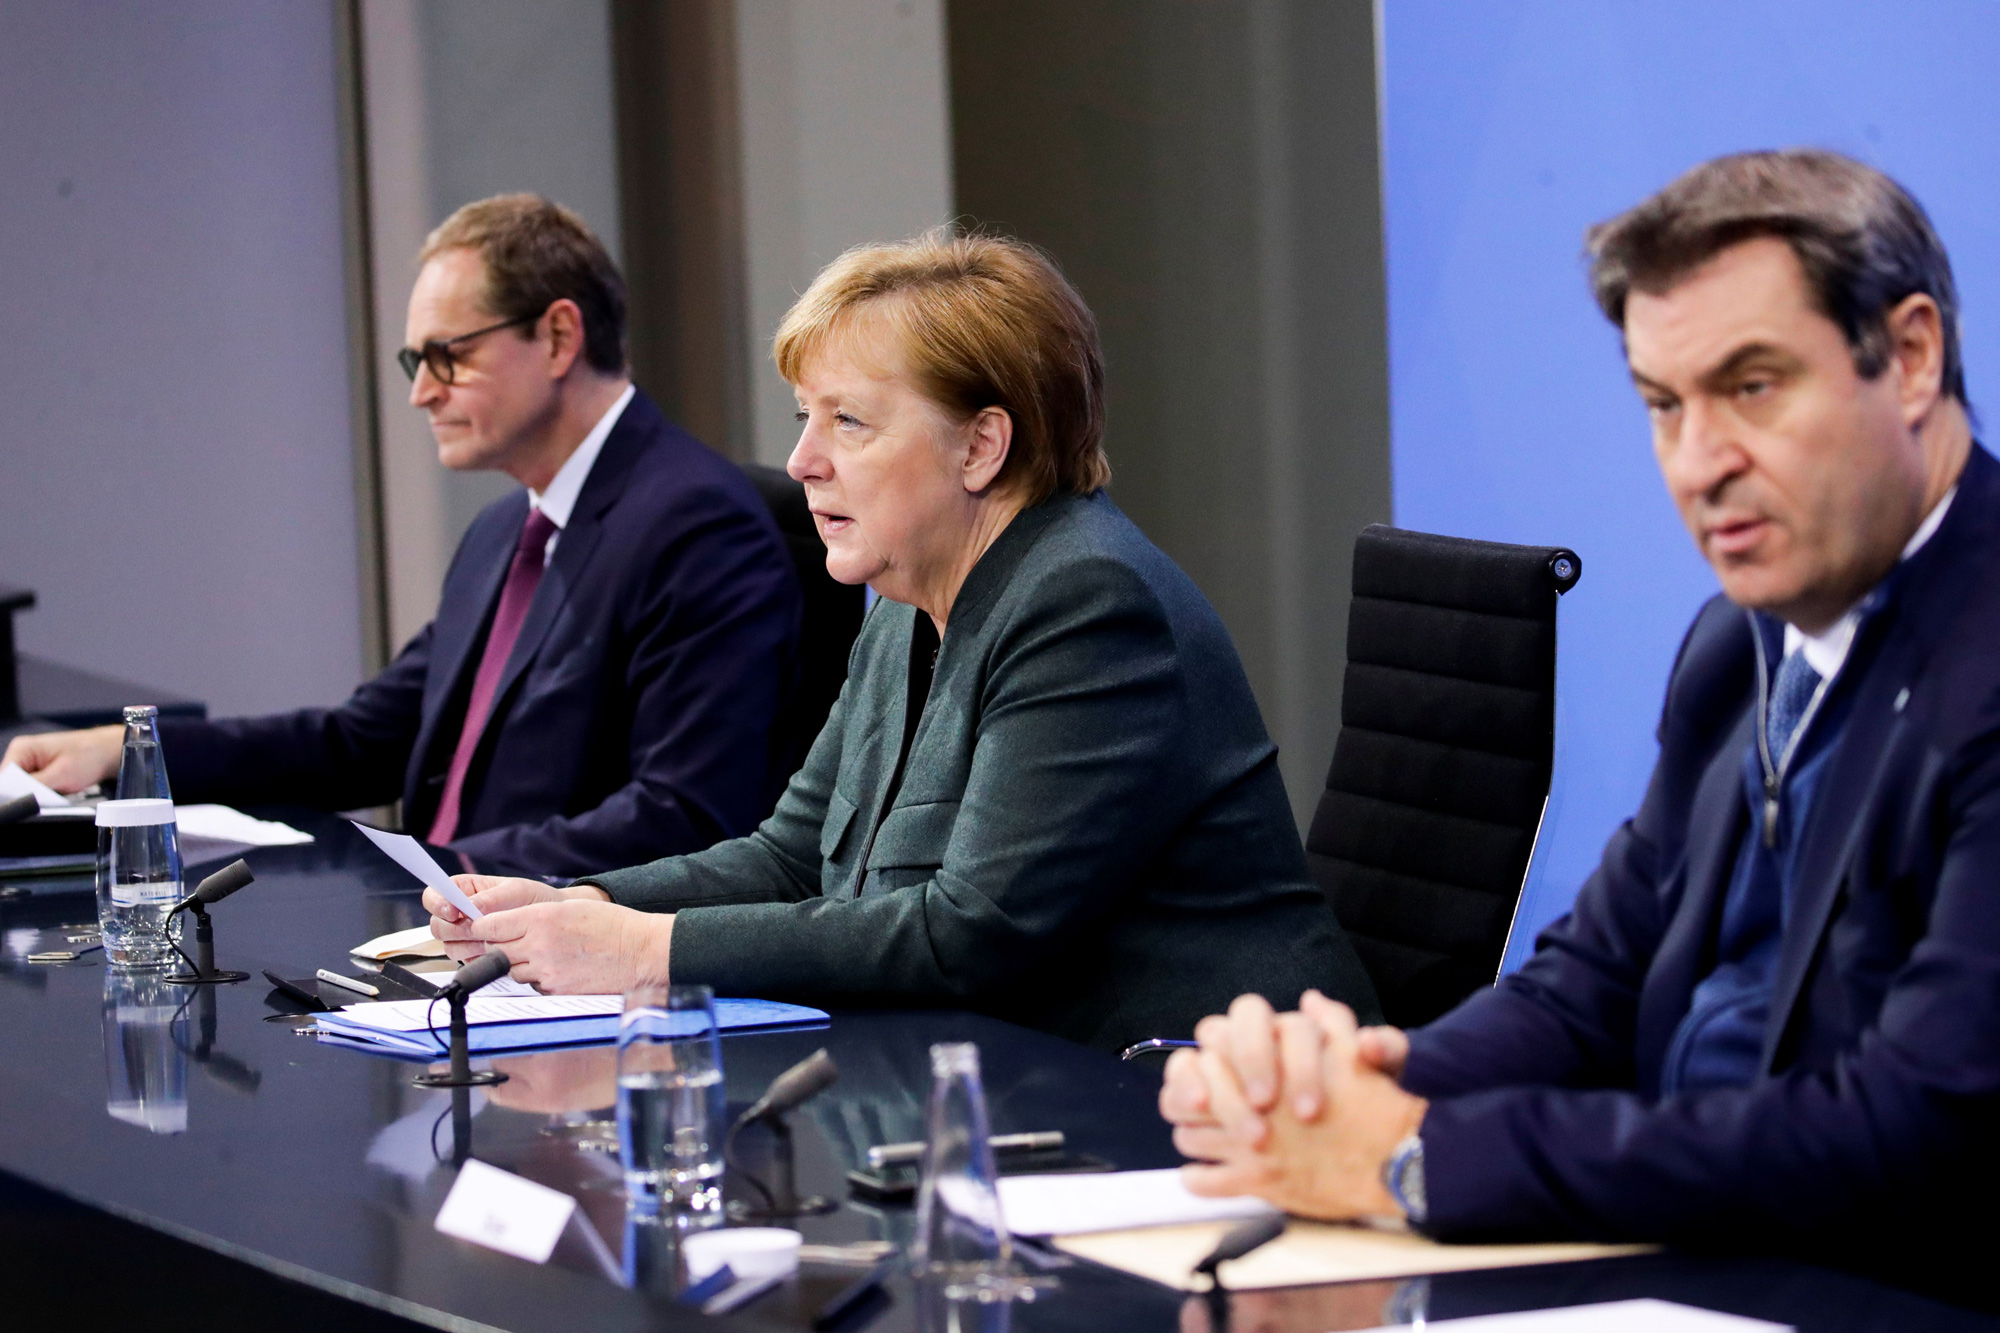 Berlin's Mayor Michael Mueller, left, German Chancellor Angela Merkel, center, and Bavaria's State Premier Markus Soeder attend a press conference at the Chancellery in Berlin on January 19.